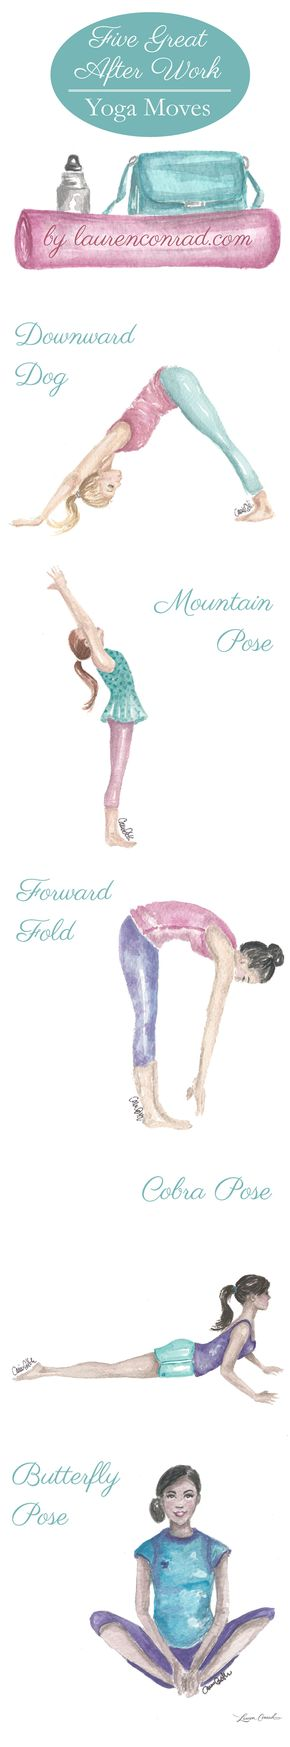 Get Fit: The 5 Best After-Work Yoga Poses - Get Fit: The 5 Best After-Work Yoga Poses